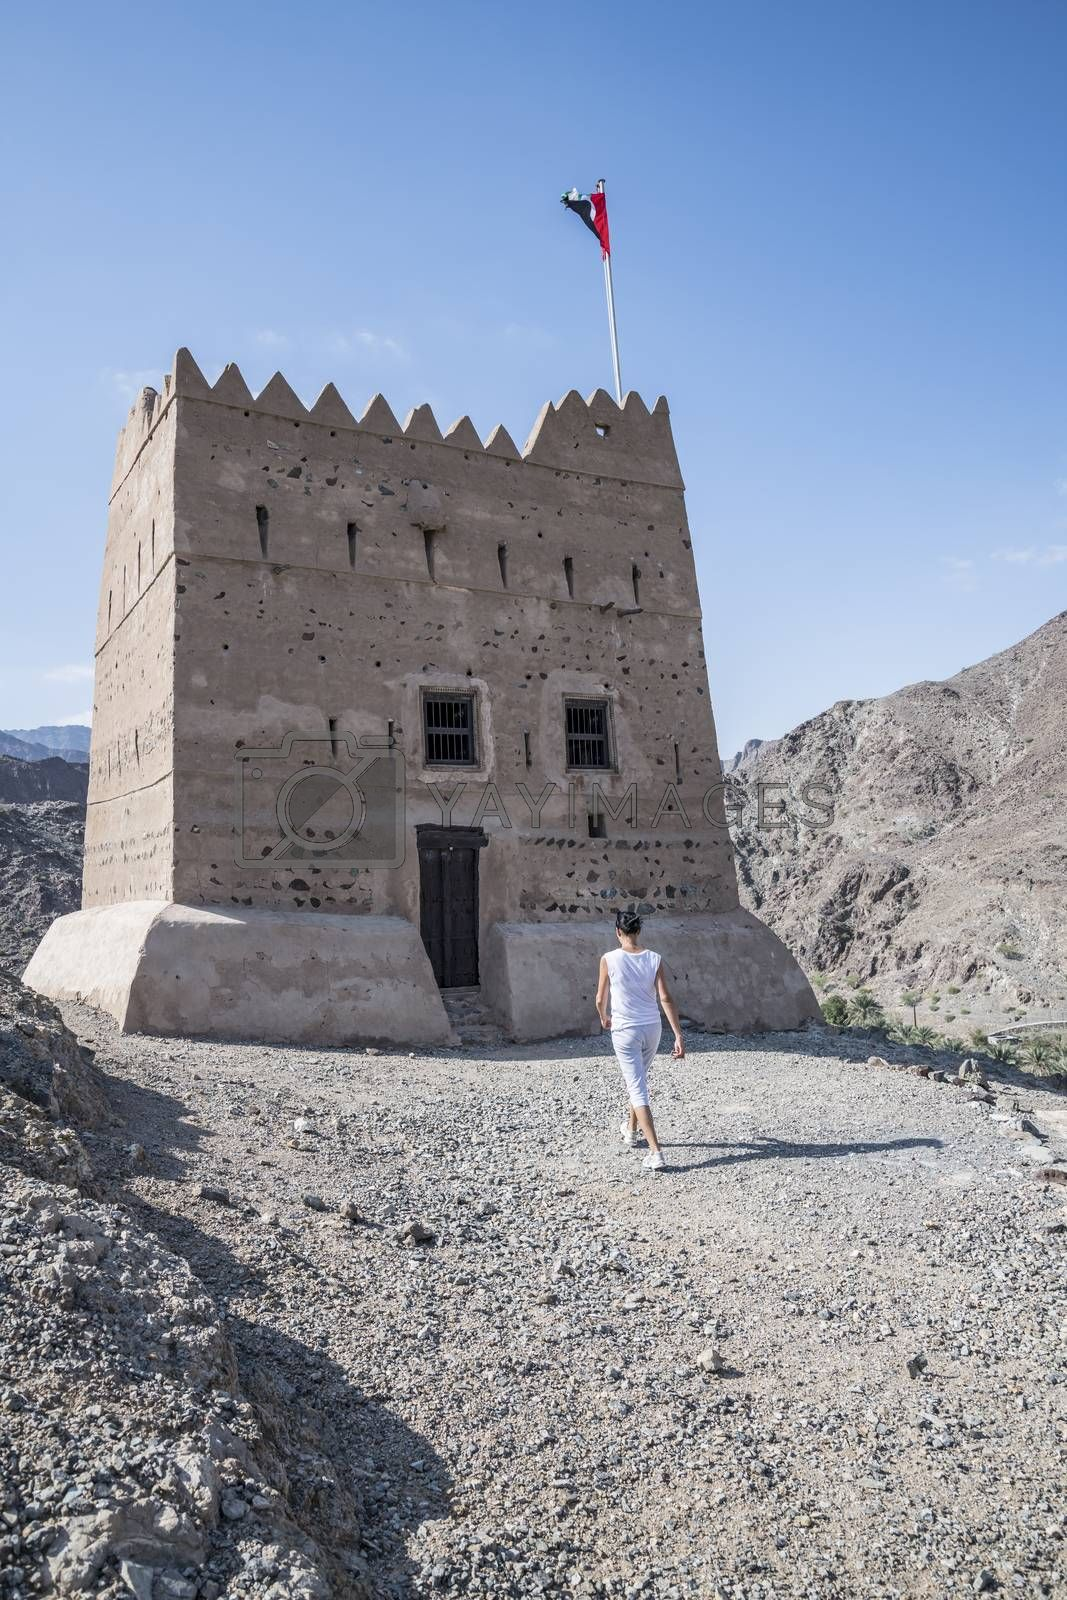 Al Hayl (Hail) Fortress which occupies an important strategic position and a unity point for the road to Fujairah. Built in 1930 (as per the latest research) at west bank of the valley of Al Hayl on a mountain, in the era of Mohammed bin Hamad Al Sharqi